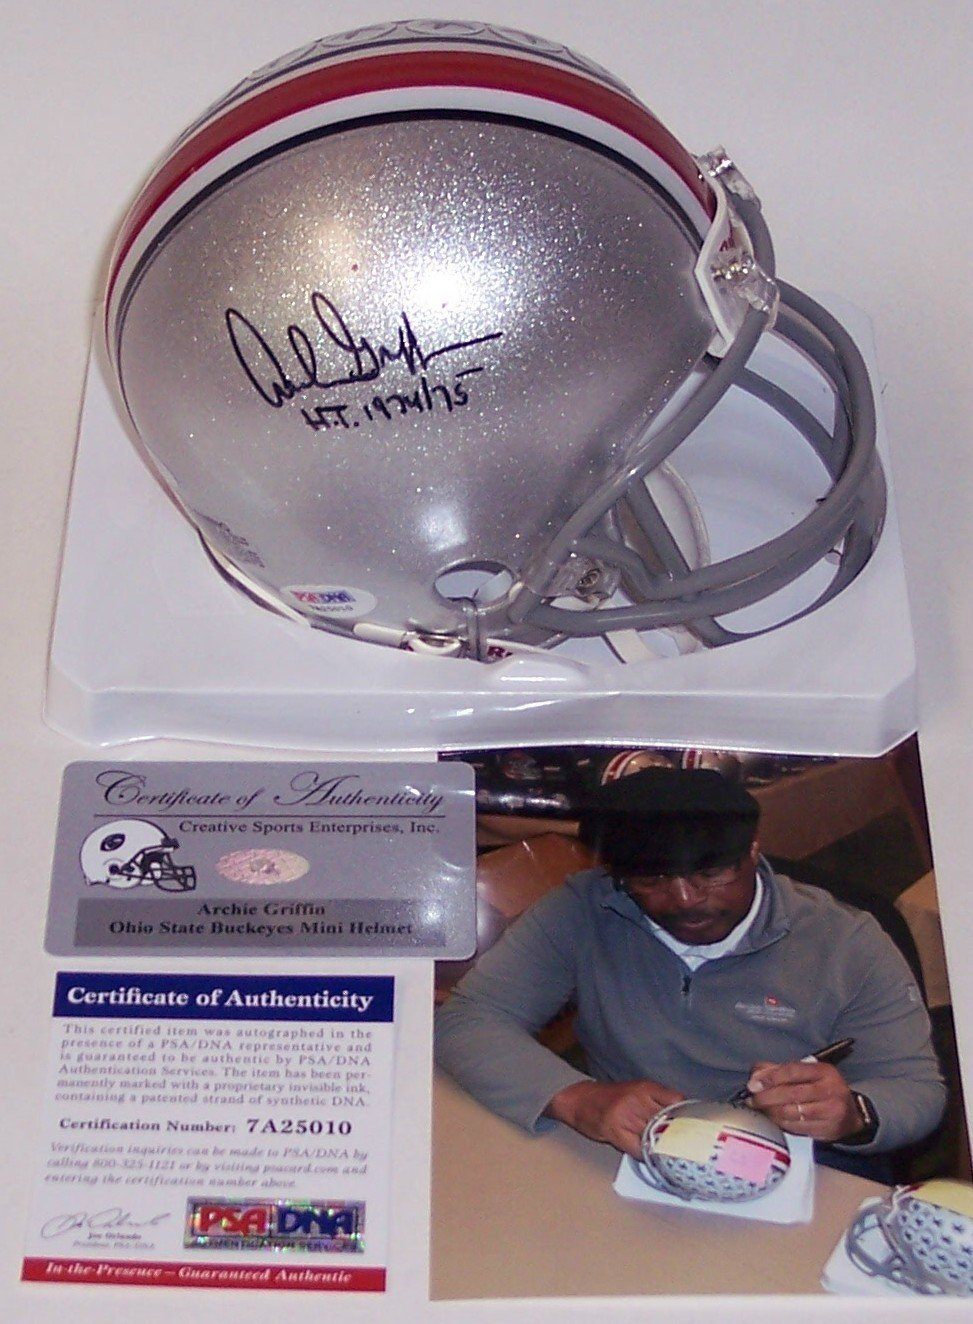 a6e94066022 Get Quotations · Archie Griffin Autographed Hand Signed Ohio State Buckeyes  Mini Football Helmet - with 1974 75